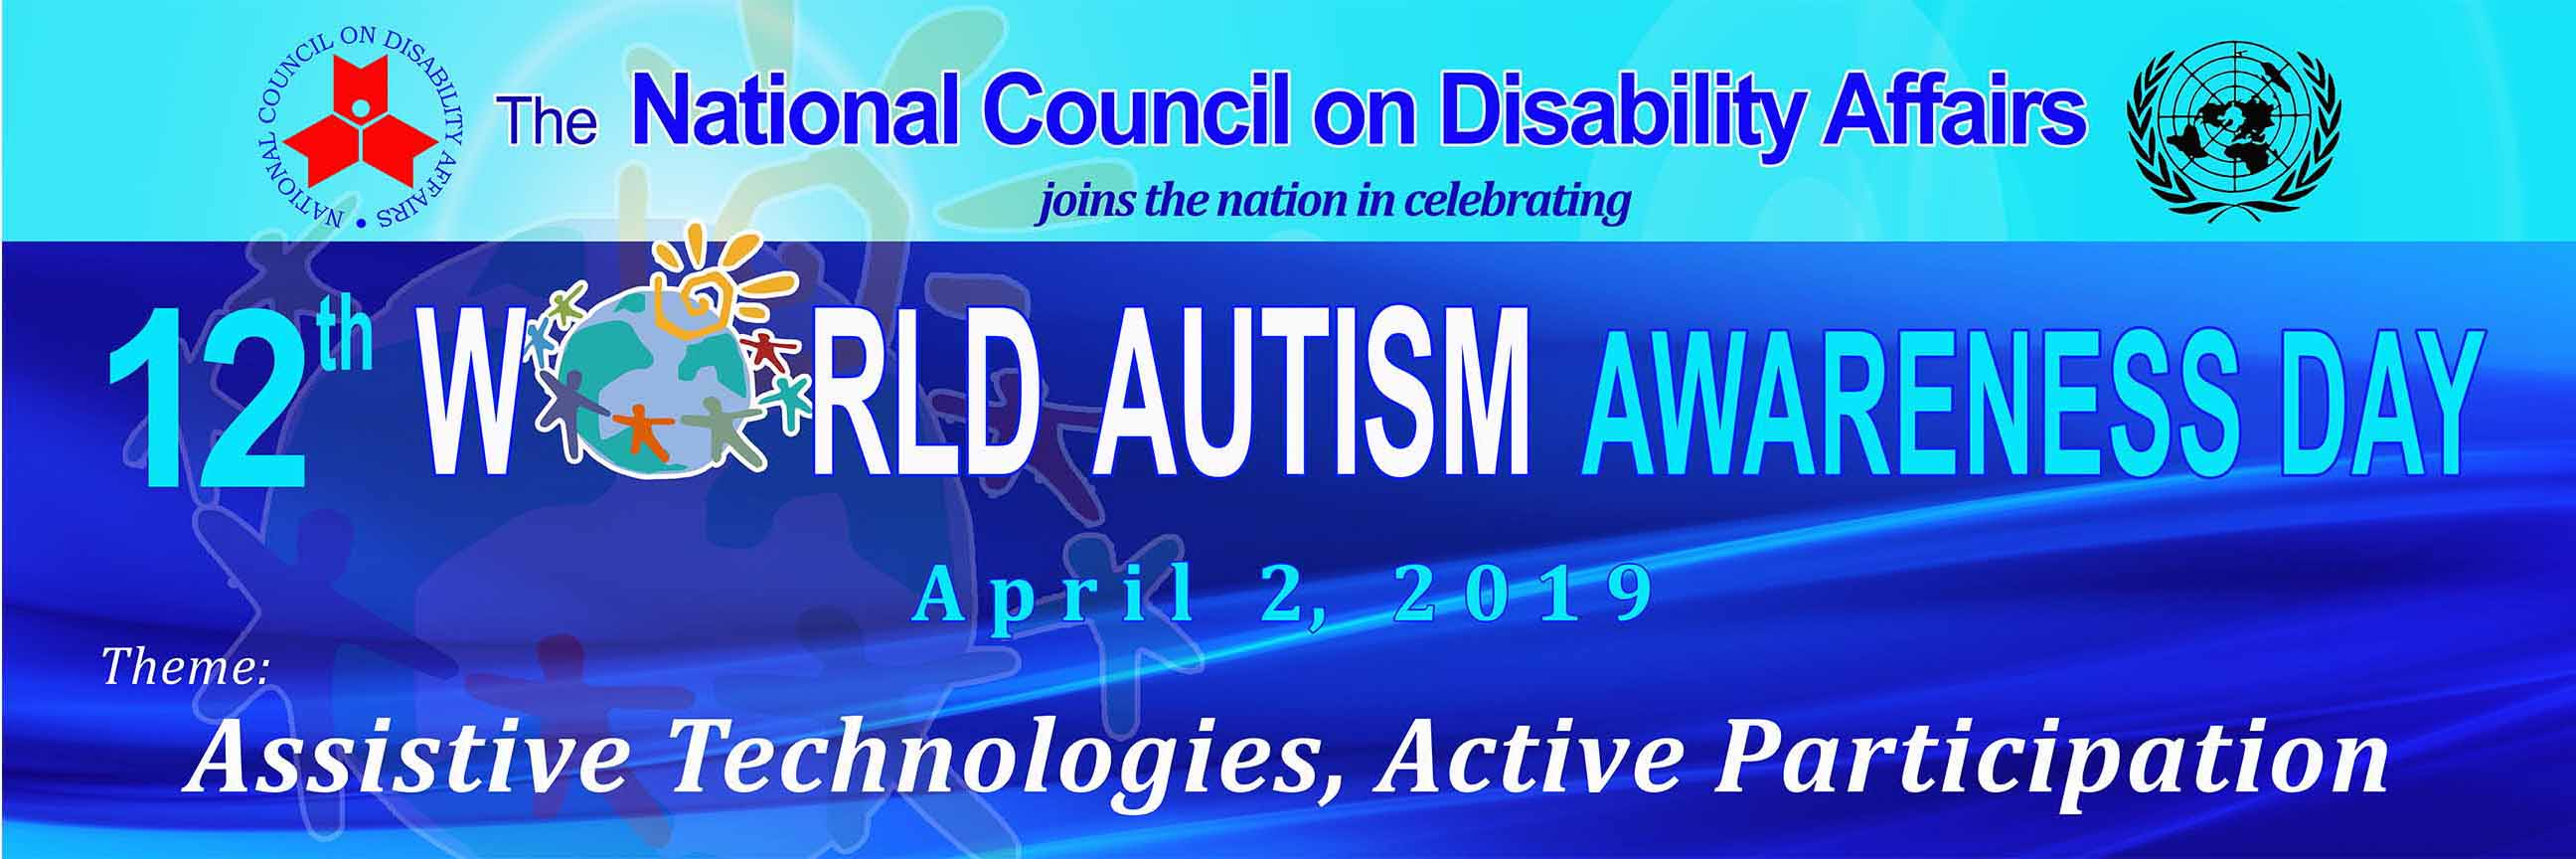 12th World Autism Awareness Day